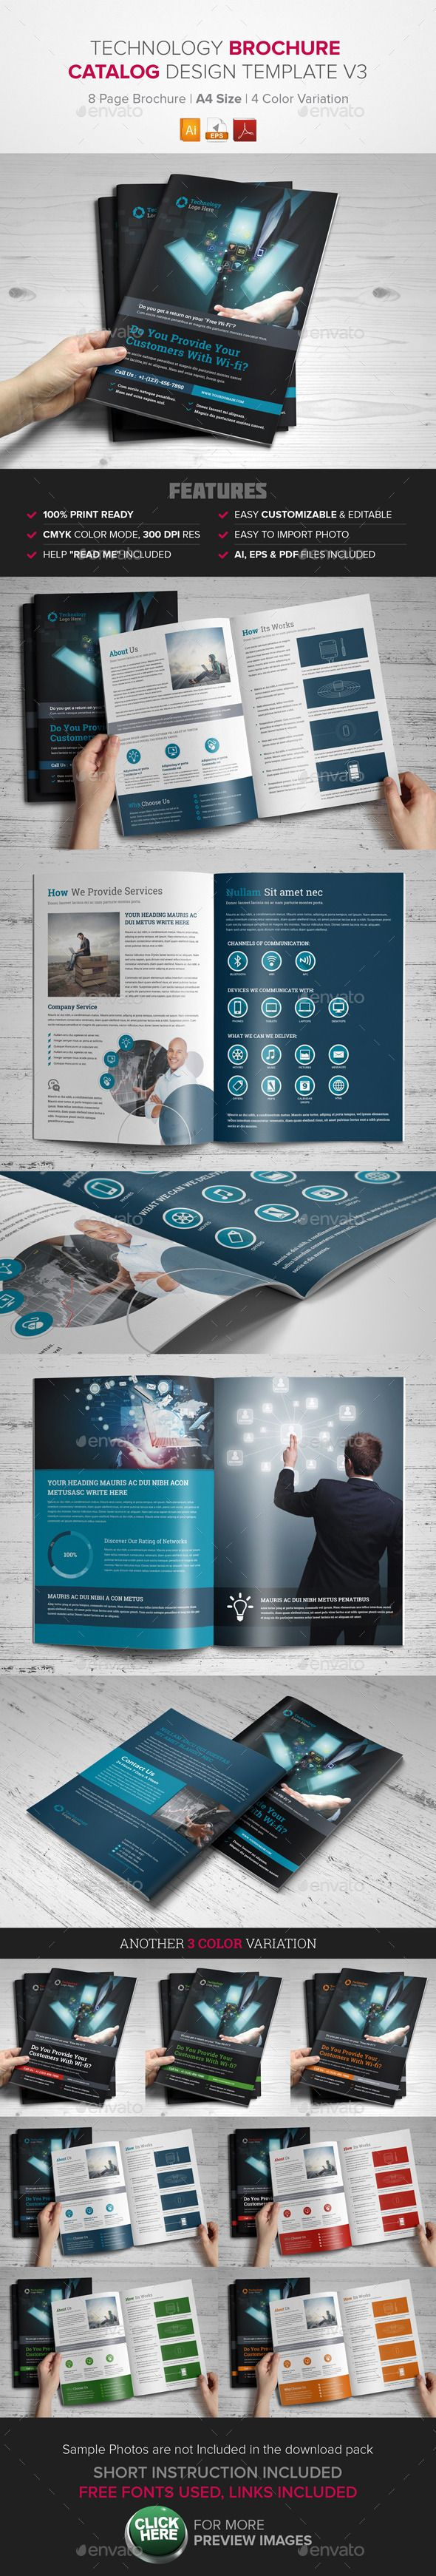 Technology Brochure Catalog Template V Brochures Template And - Technology brochure template